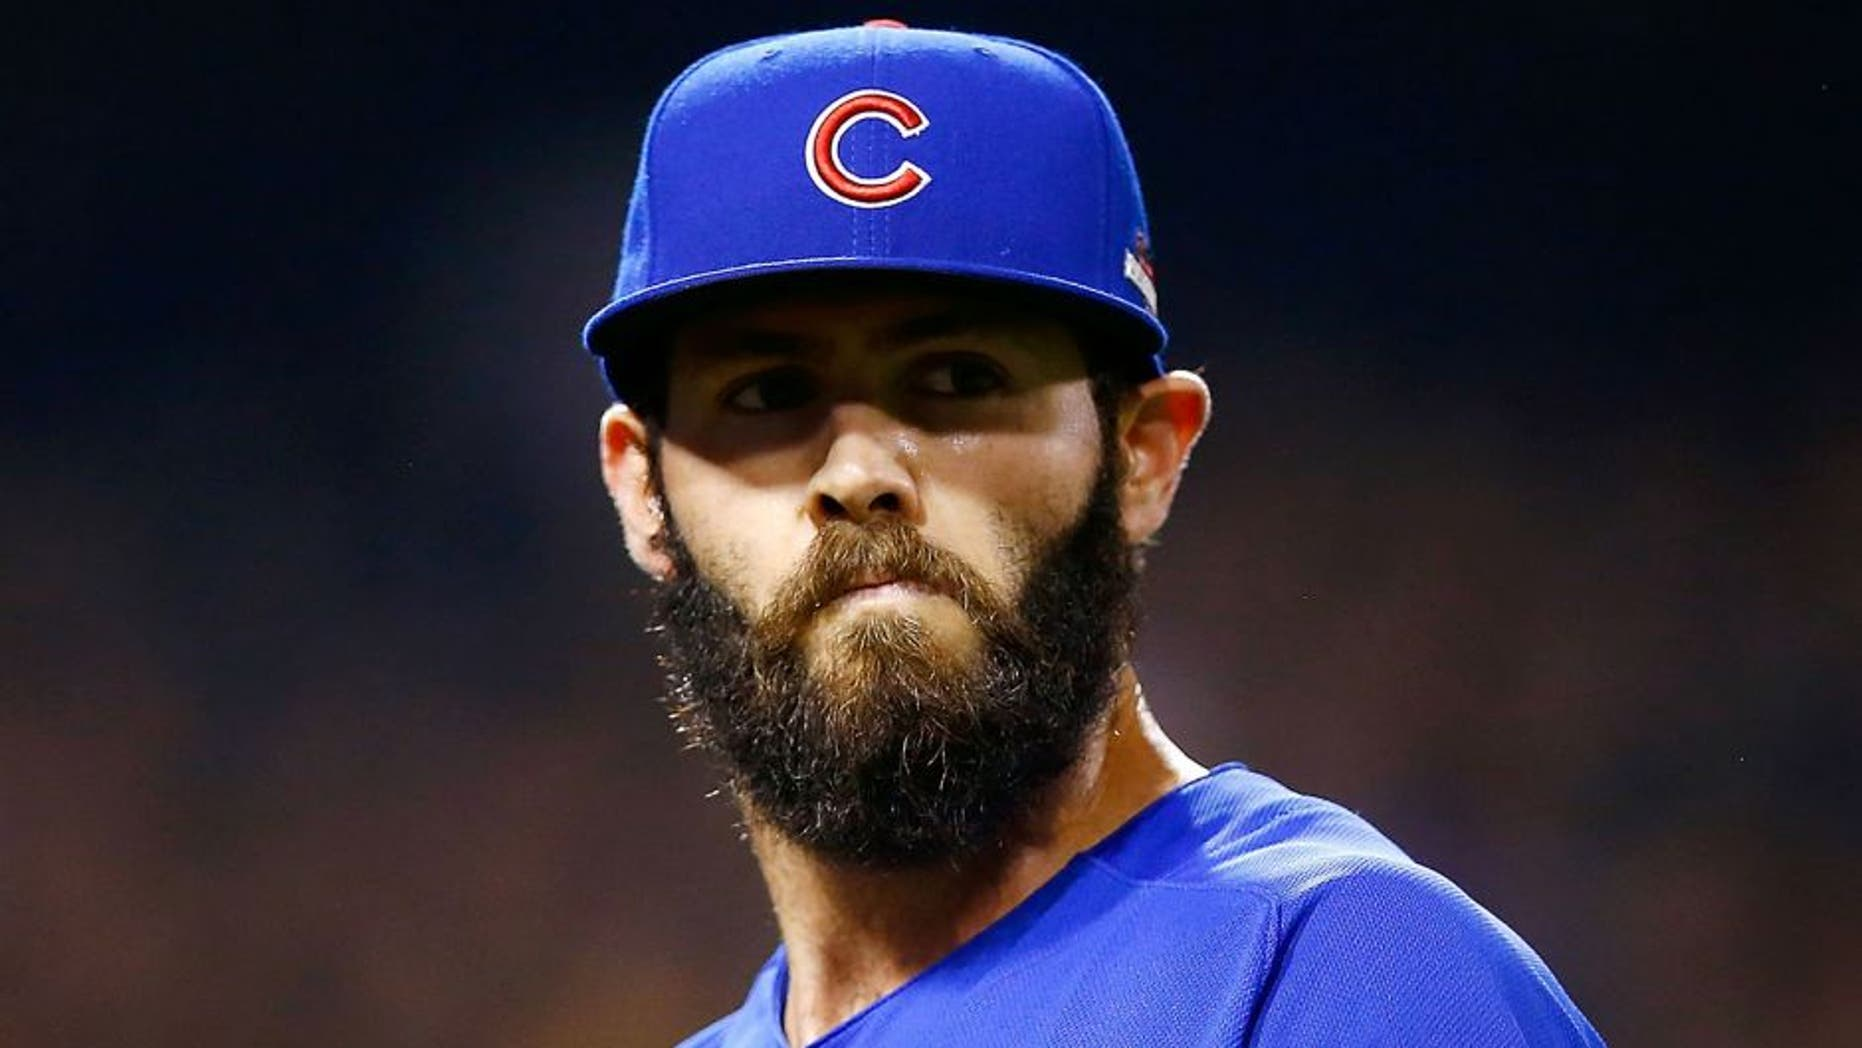 PITTSBURGH, PA - OCTOBER 07: Jake Arrieta #49 of the Chicago Cubs looks on in the third inning during the National League Wild Card game against the Pittsburgh Pirates at PNC Park on October 7, 2015 in Pittsburgh, Pennsylvania. (Photo by Jared Wickerham/Getty Images)